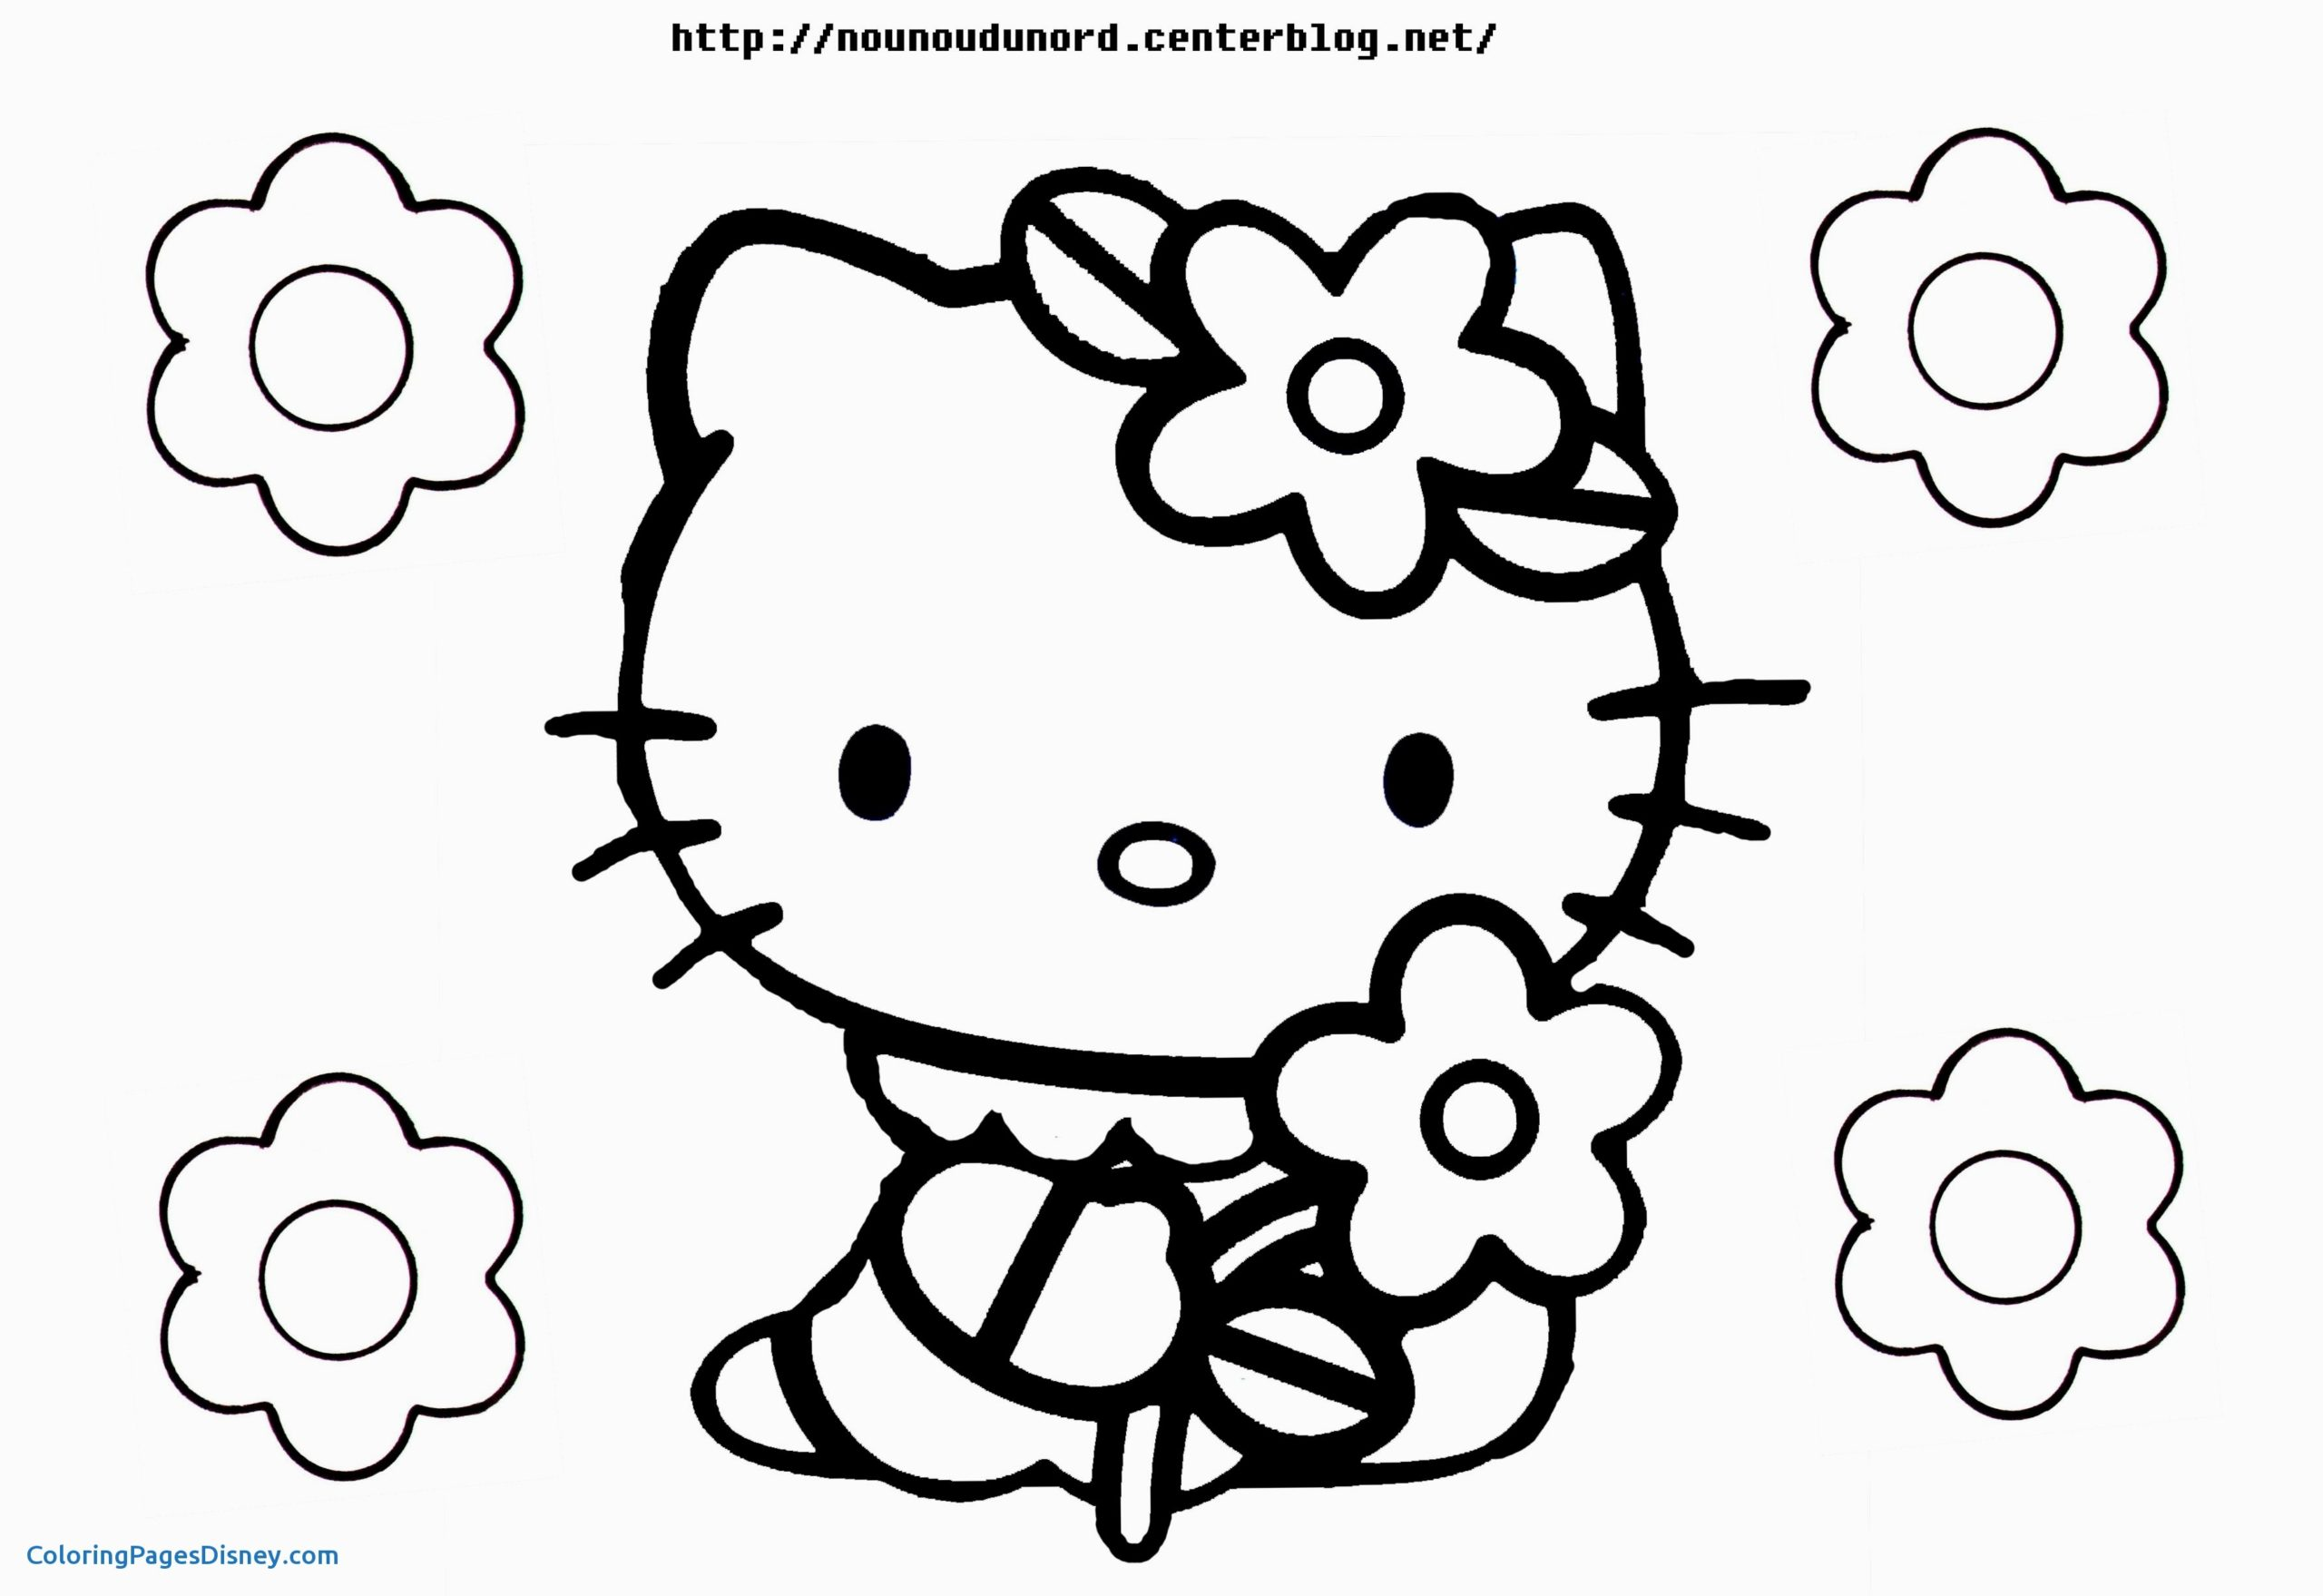 Charmant Coloriage Hello Ketty 32 Pour votre Coloriage Inspiration for Coloriage Hello Ketty